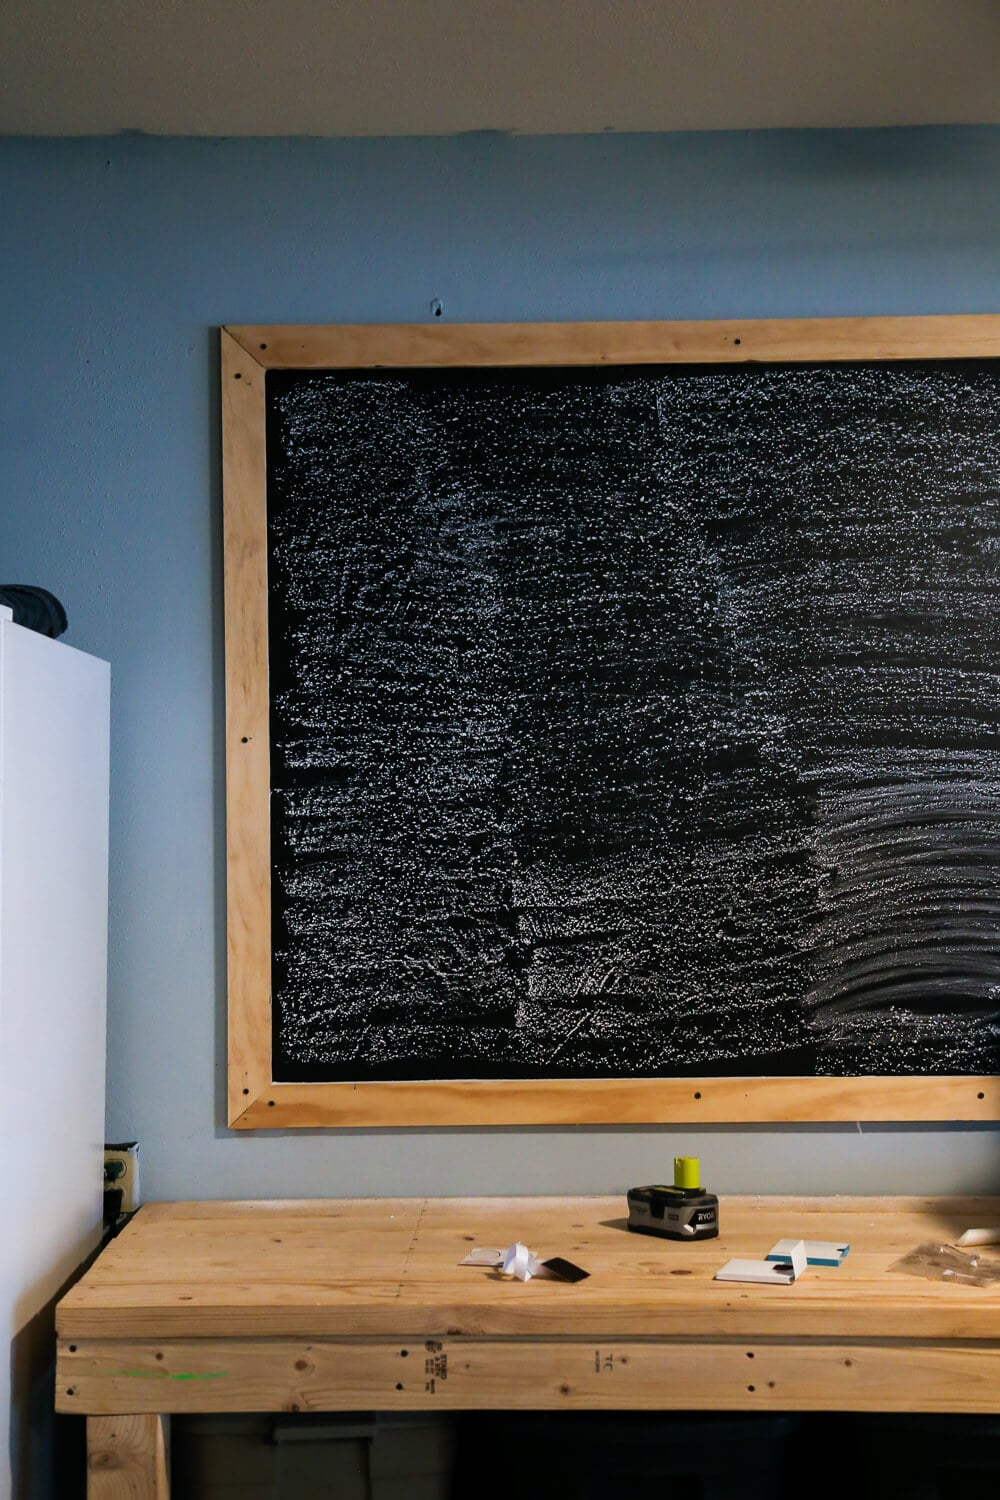 Prepping DIY chalkboard for use